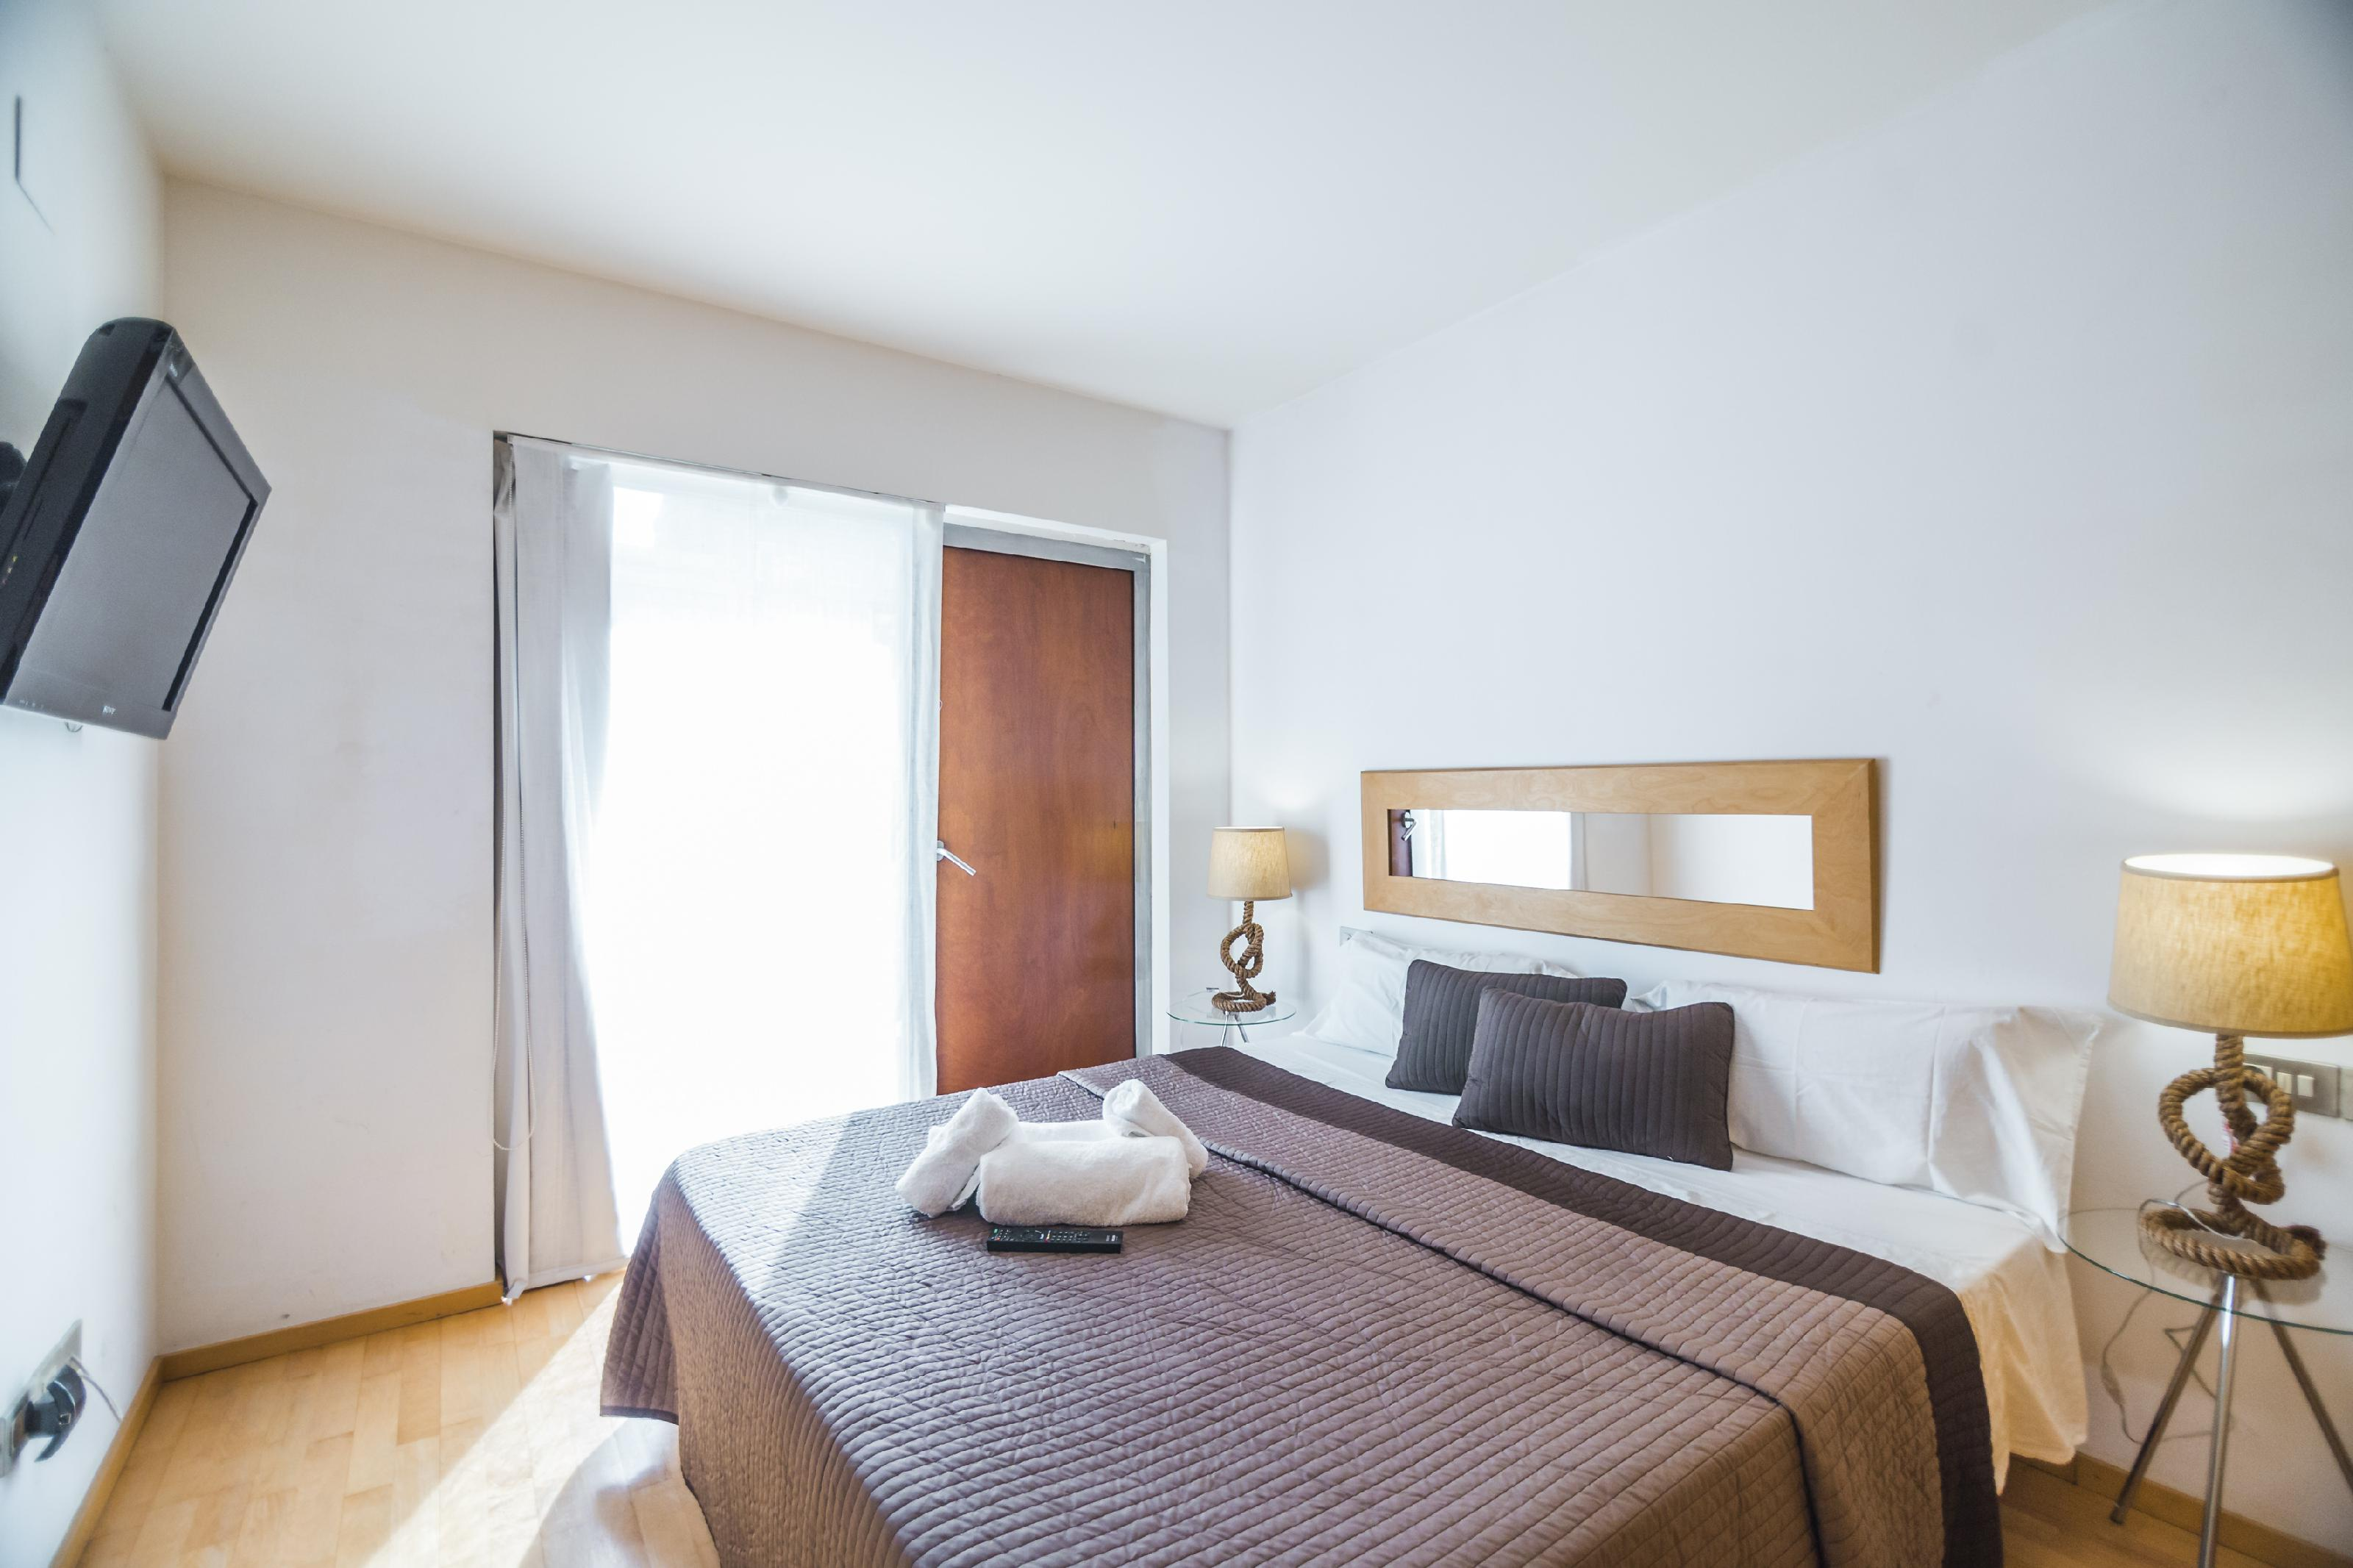 109651 Apartment for sale in Eixample, Dreta Eixample 22